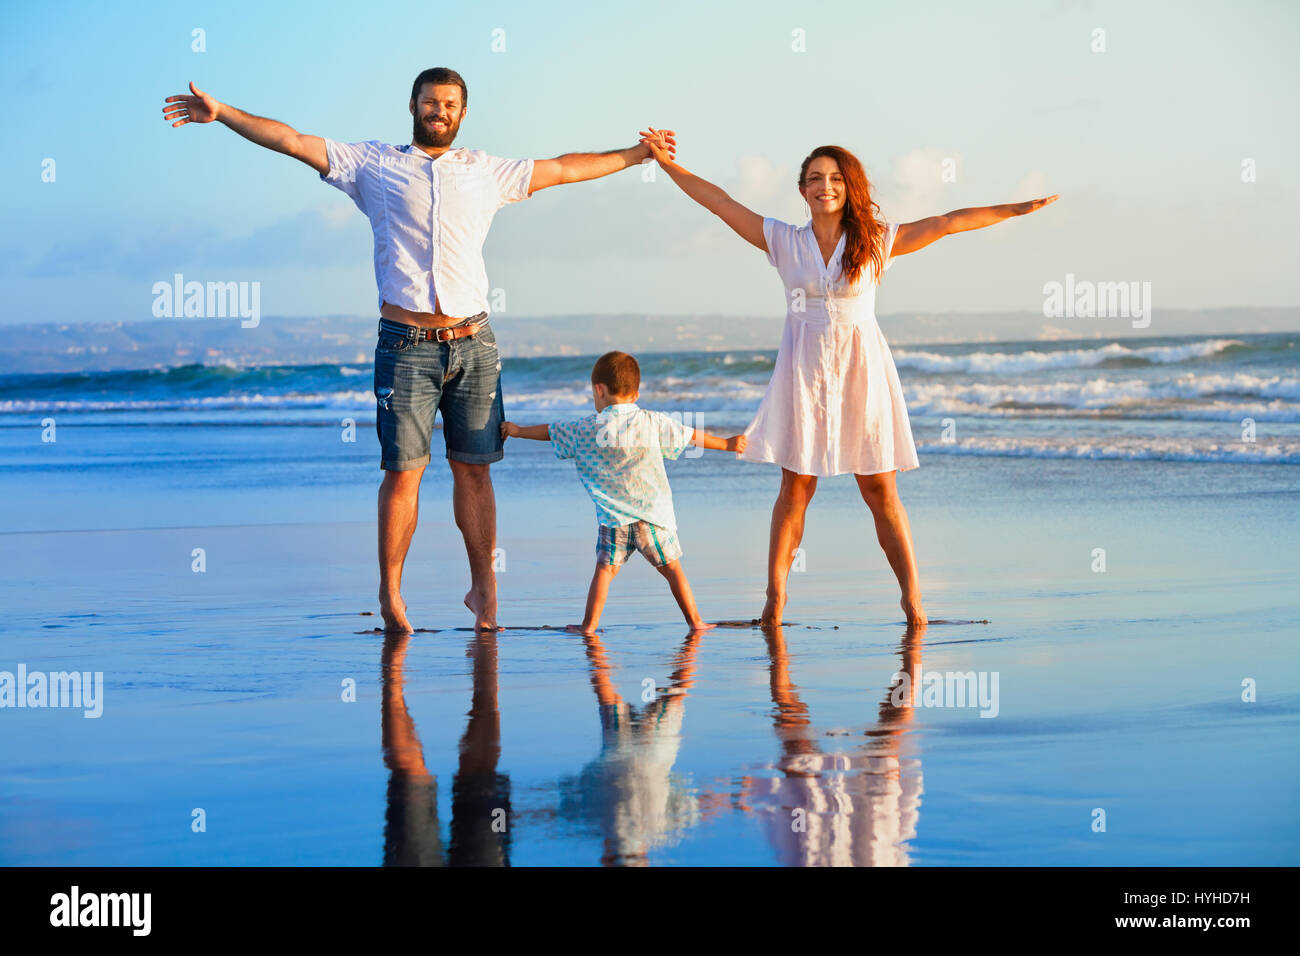 Happy family - father, mother, baby son hold hands, walk and jump together by water pool on sunset black sand beach - Stock Image